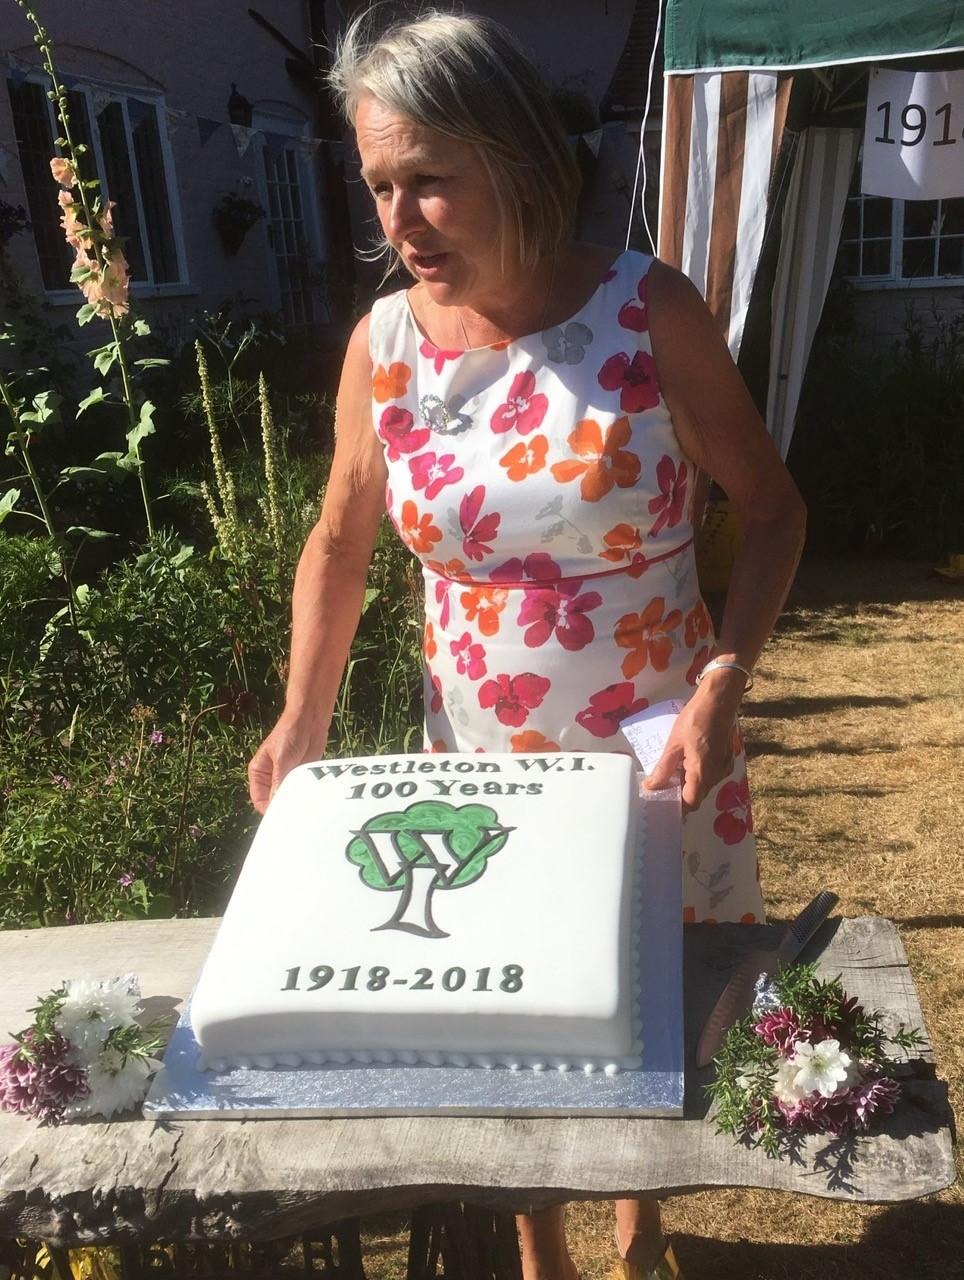 WI Branch President speaking behind centenary cake.